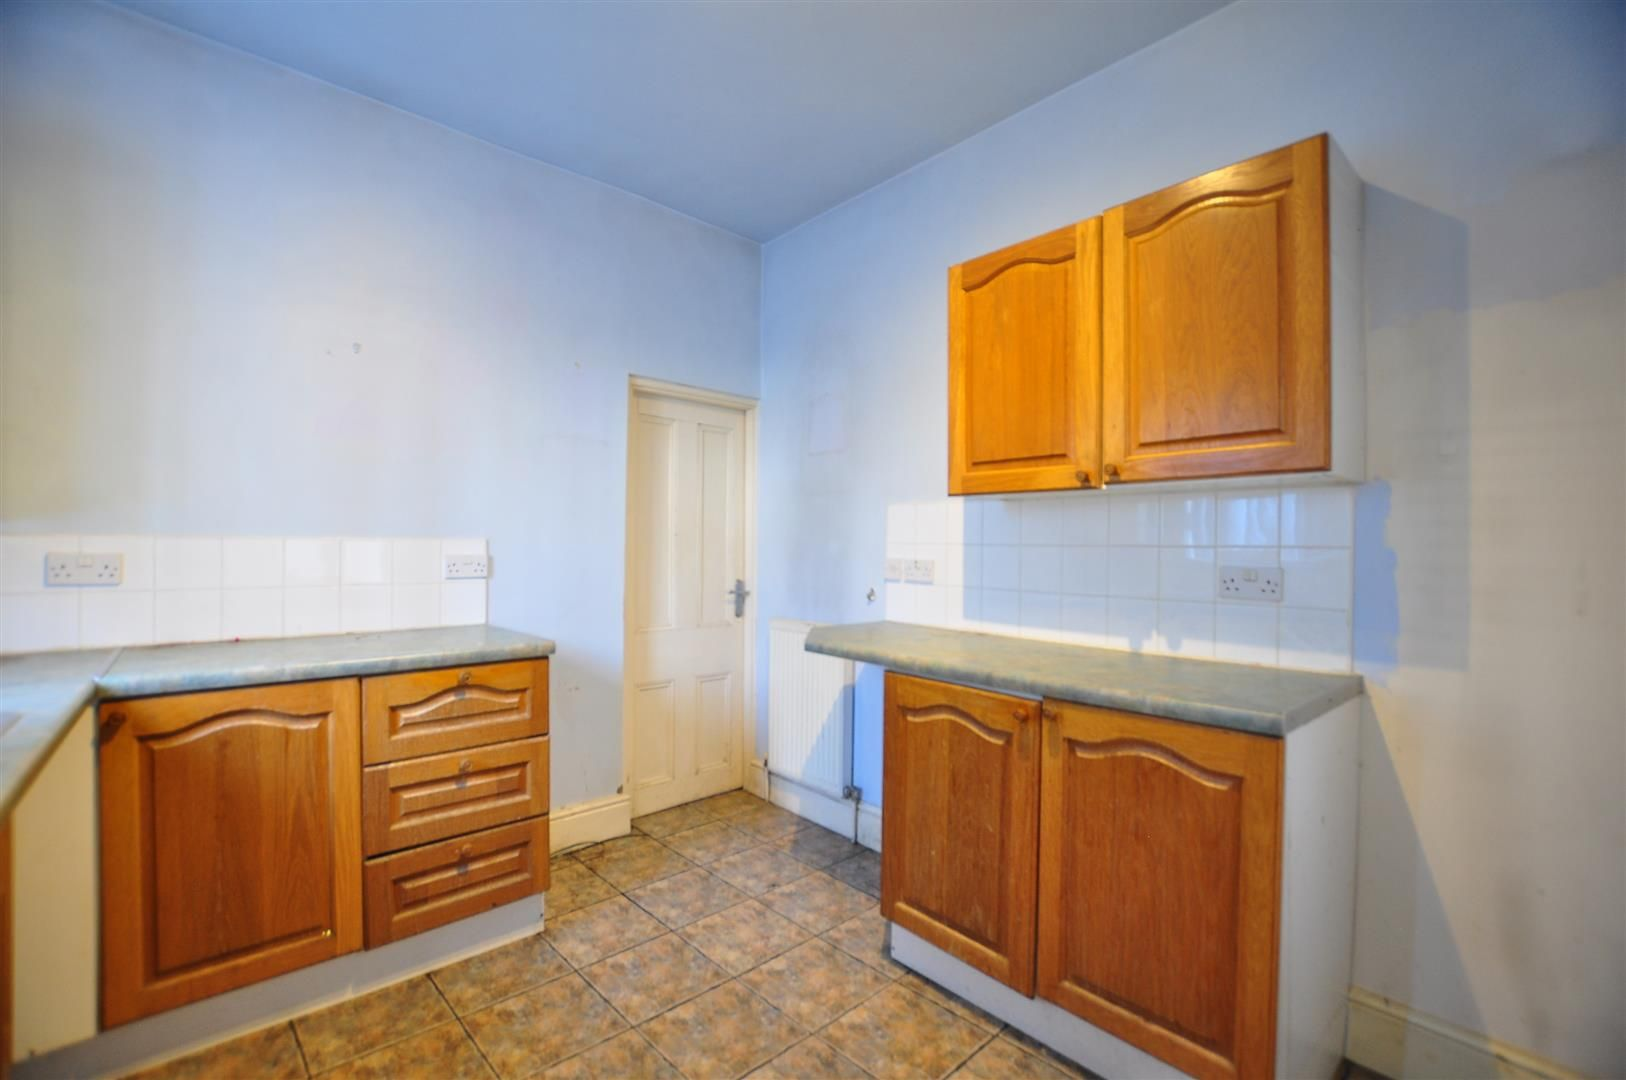 2 bed end-of-terrace for sale 7